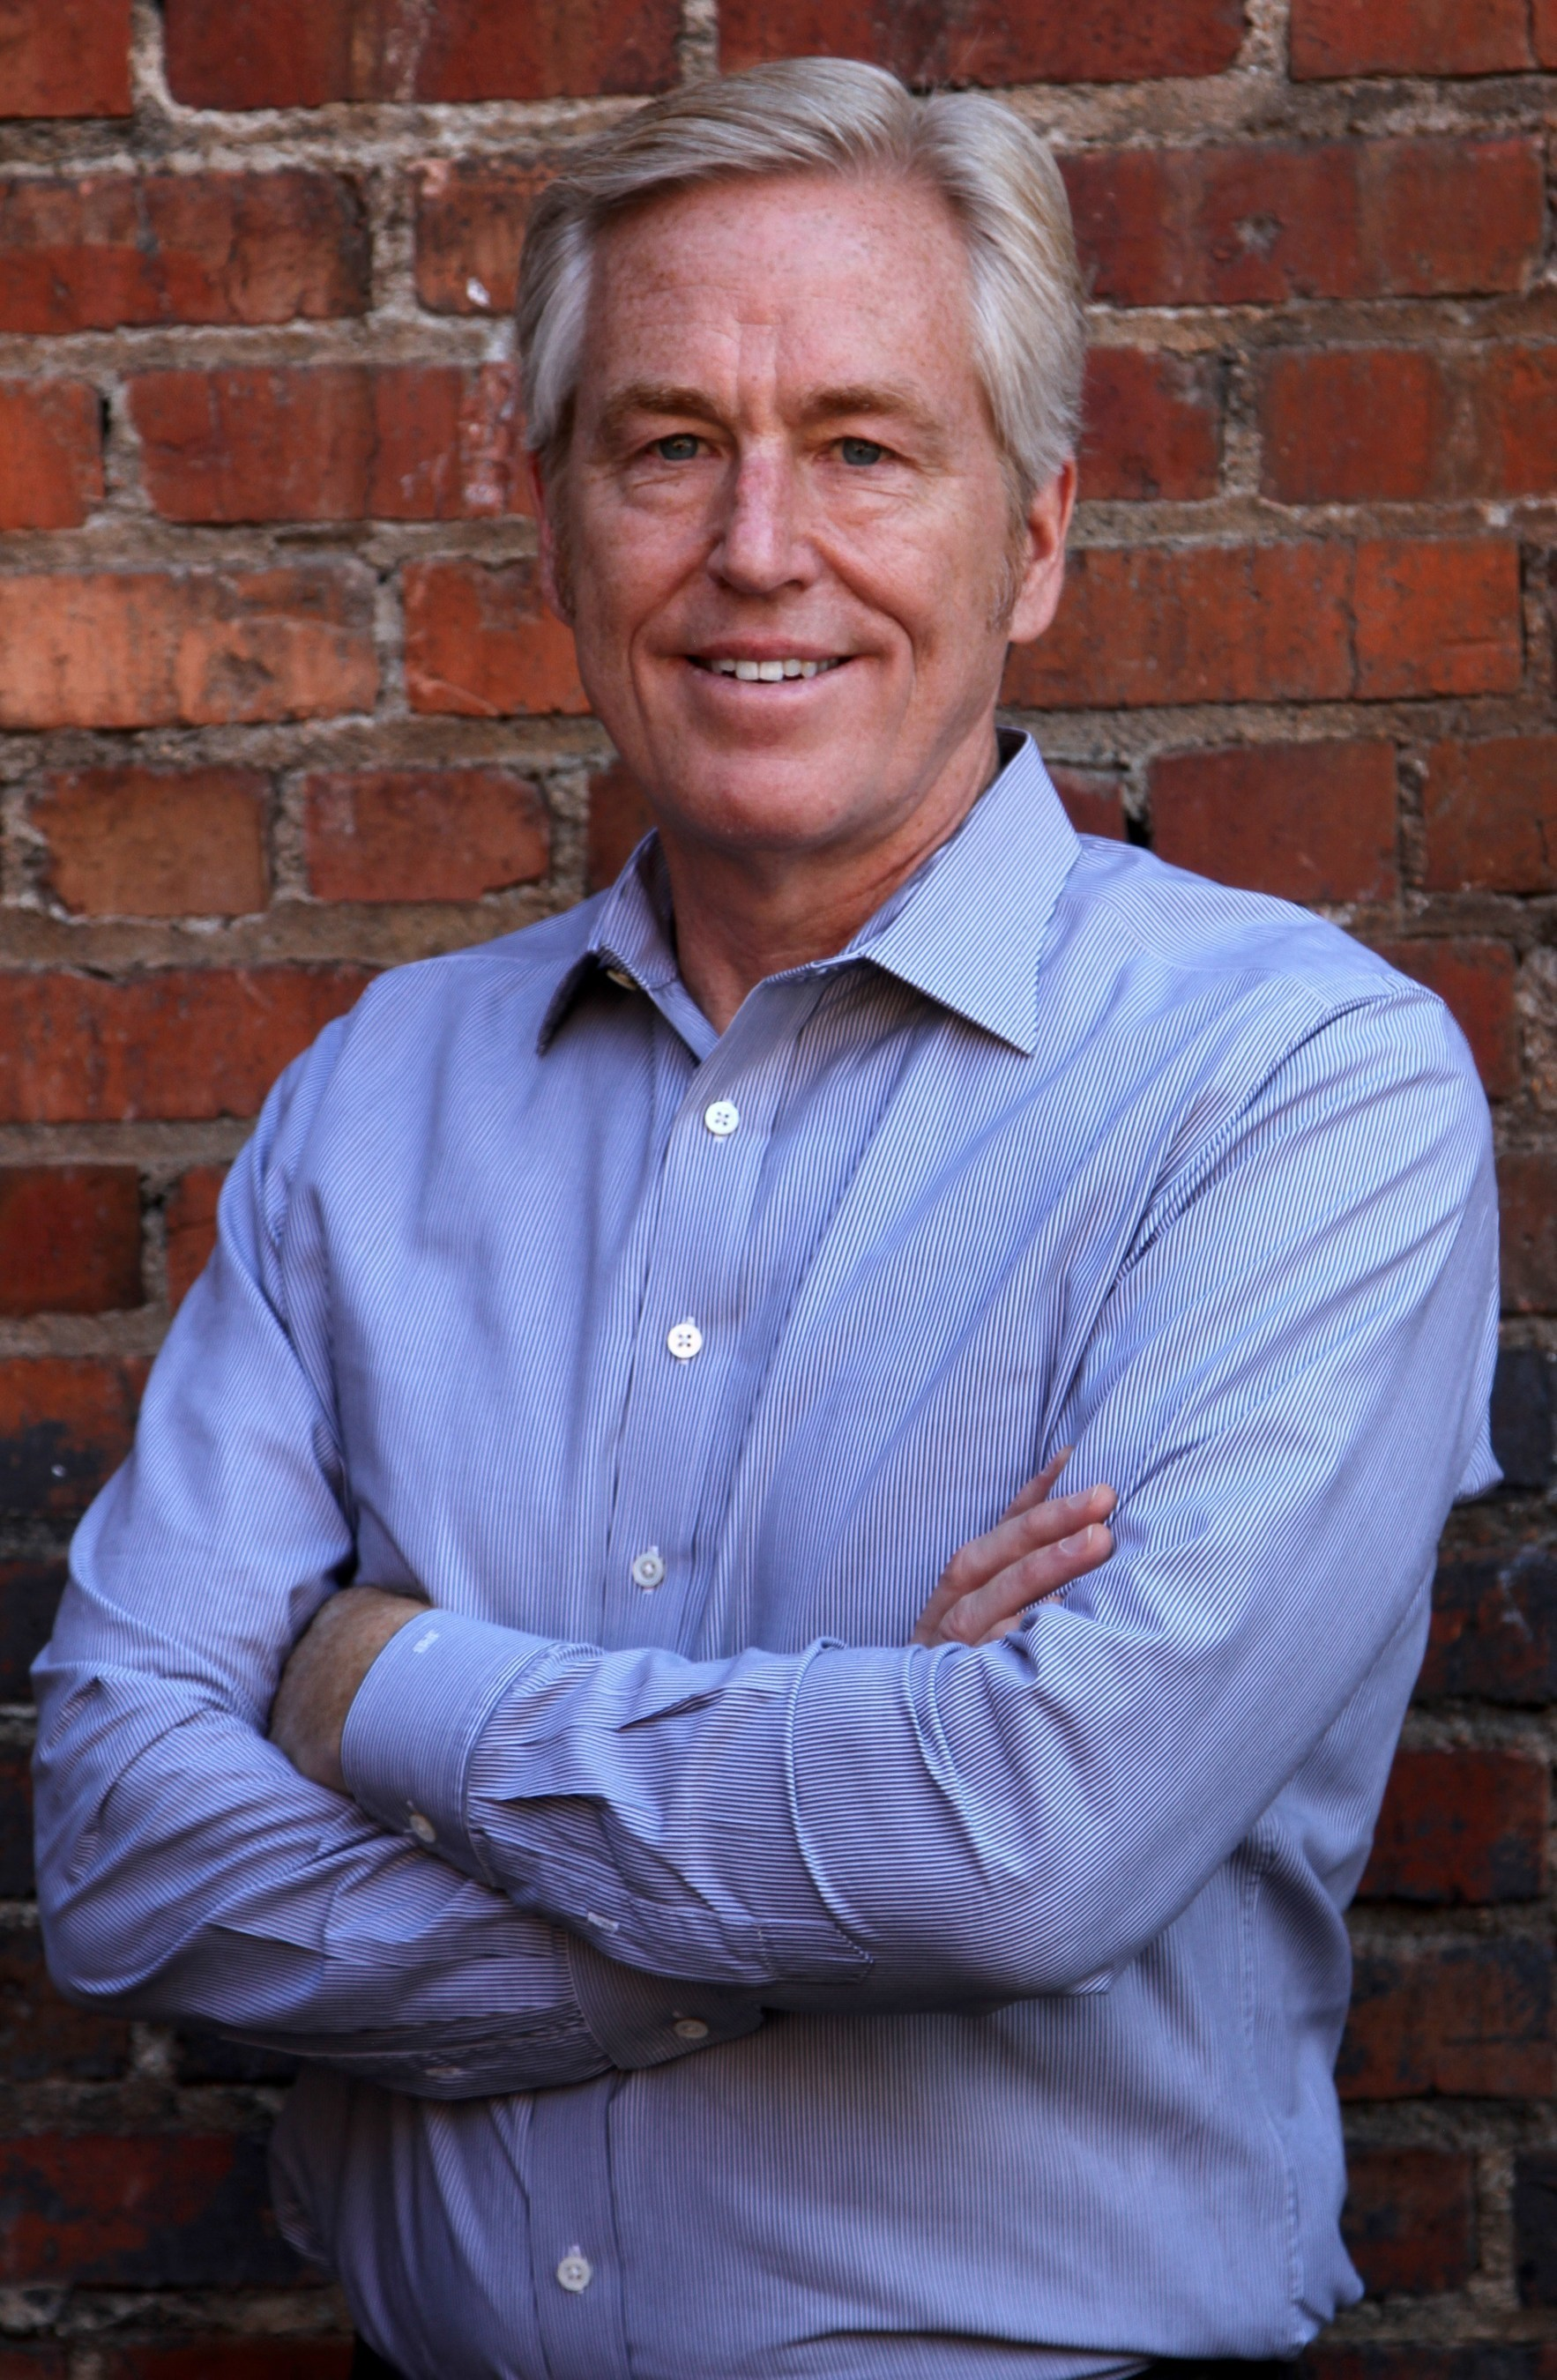 Catalyst Announces John Barr as its New President. Industry veteran to lead new phase of company growth.